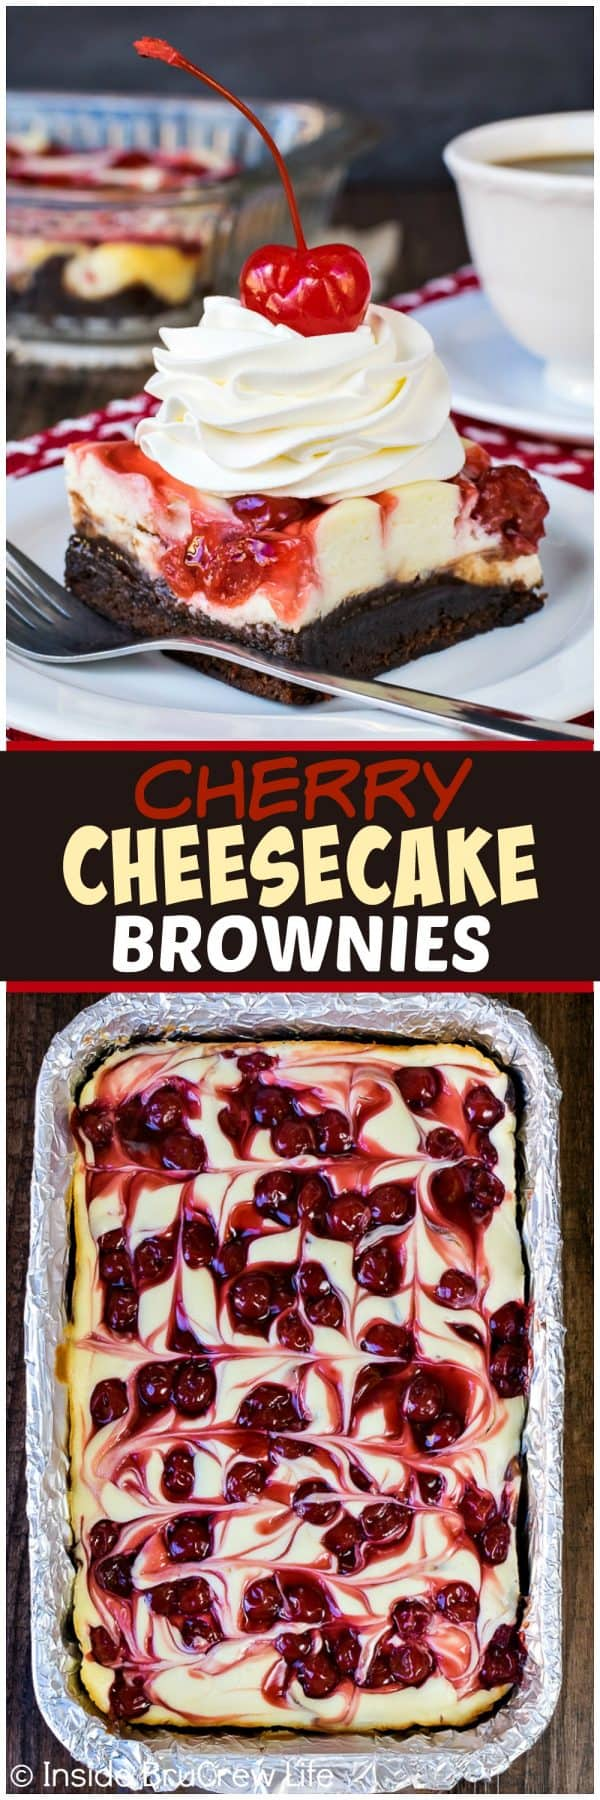 Cherry Cheesecake Brownies - swirls of pie filling and cheesecake on a fudgy brownie crust makes an impressive dessert. Easy recipe for dinner parties! #cheesecake #brownies #cherry #holiday #dessert #easyrecipe #piefilling